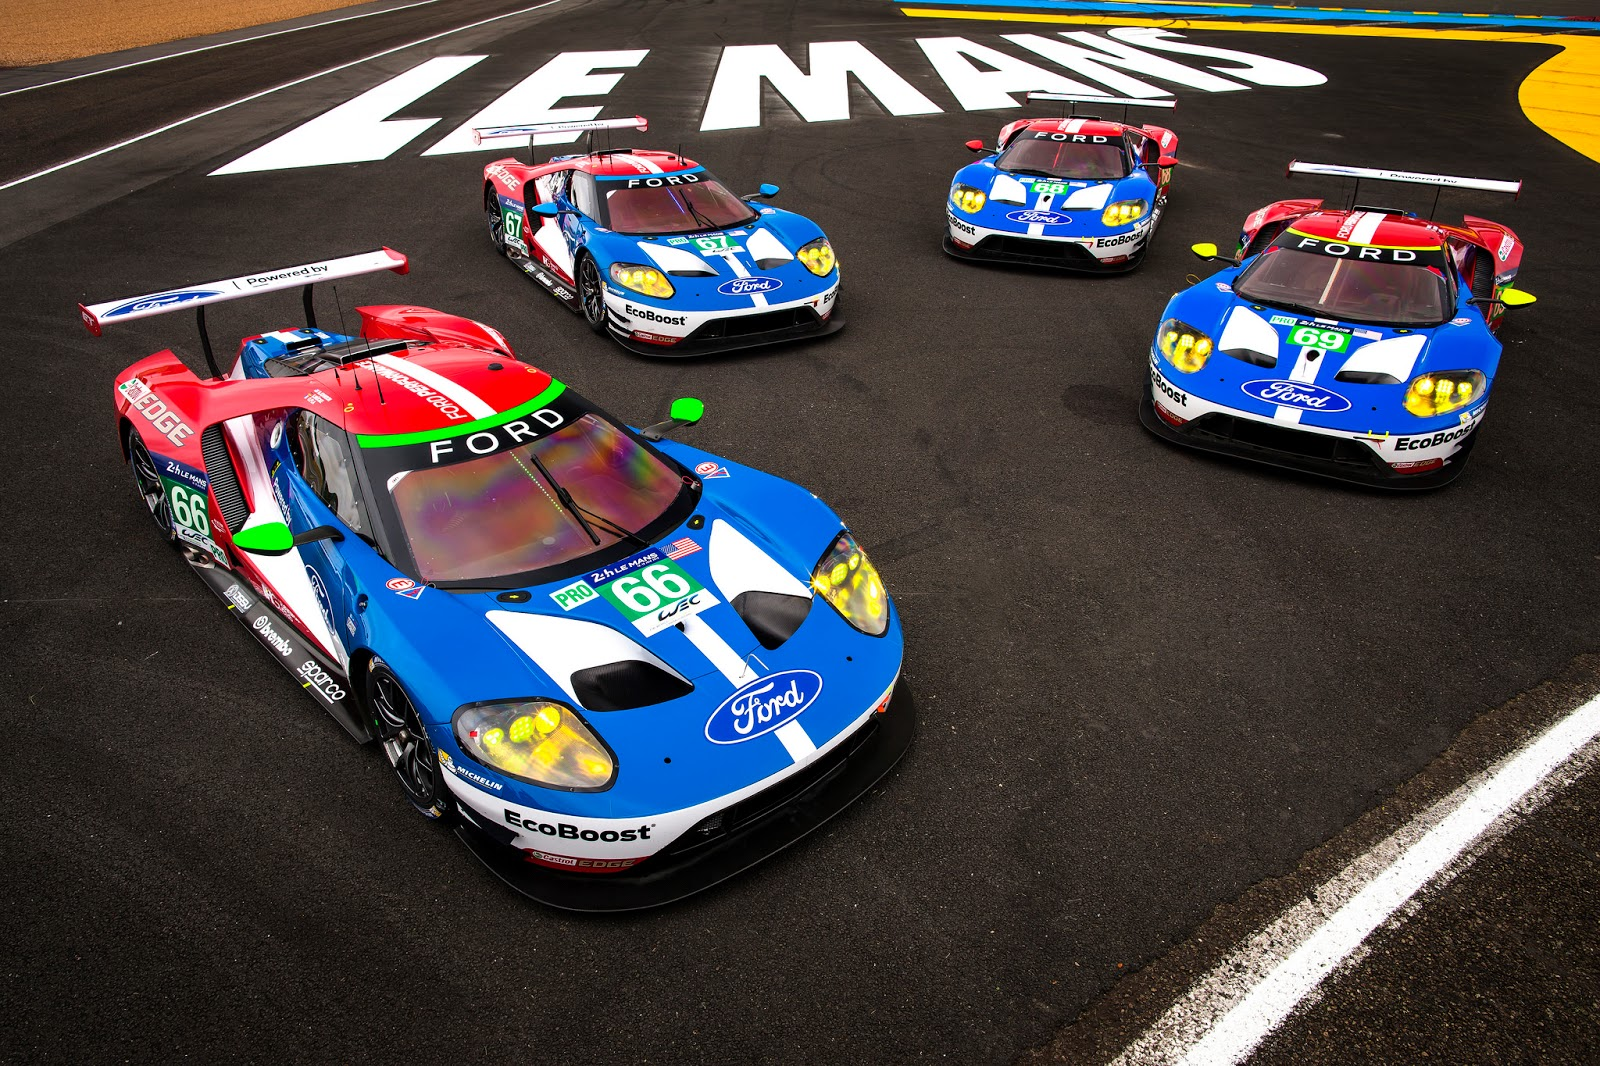 Ford GT the four le mans Οι 24 Ώρες του Le Mans έρχονται, τα 4 Ford GΤ είναι έτοιμα! Ford, Ford Chip Ganassi Racing, Ford GT, LE MANS, Racing Team, videos